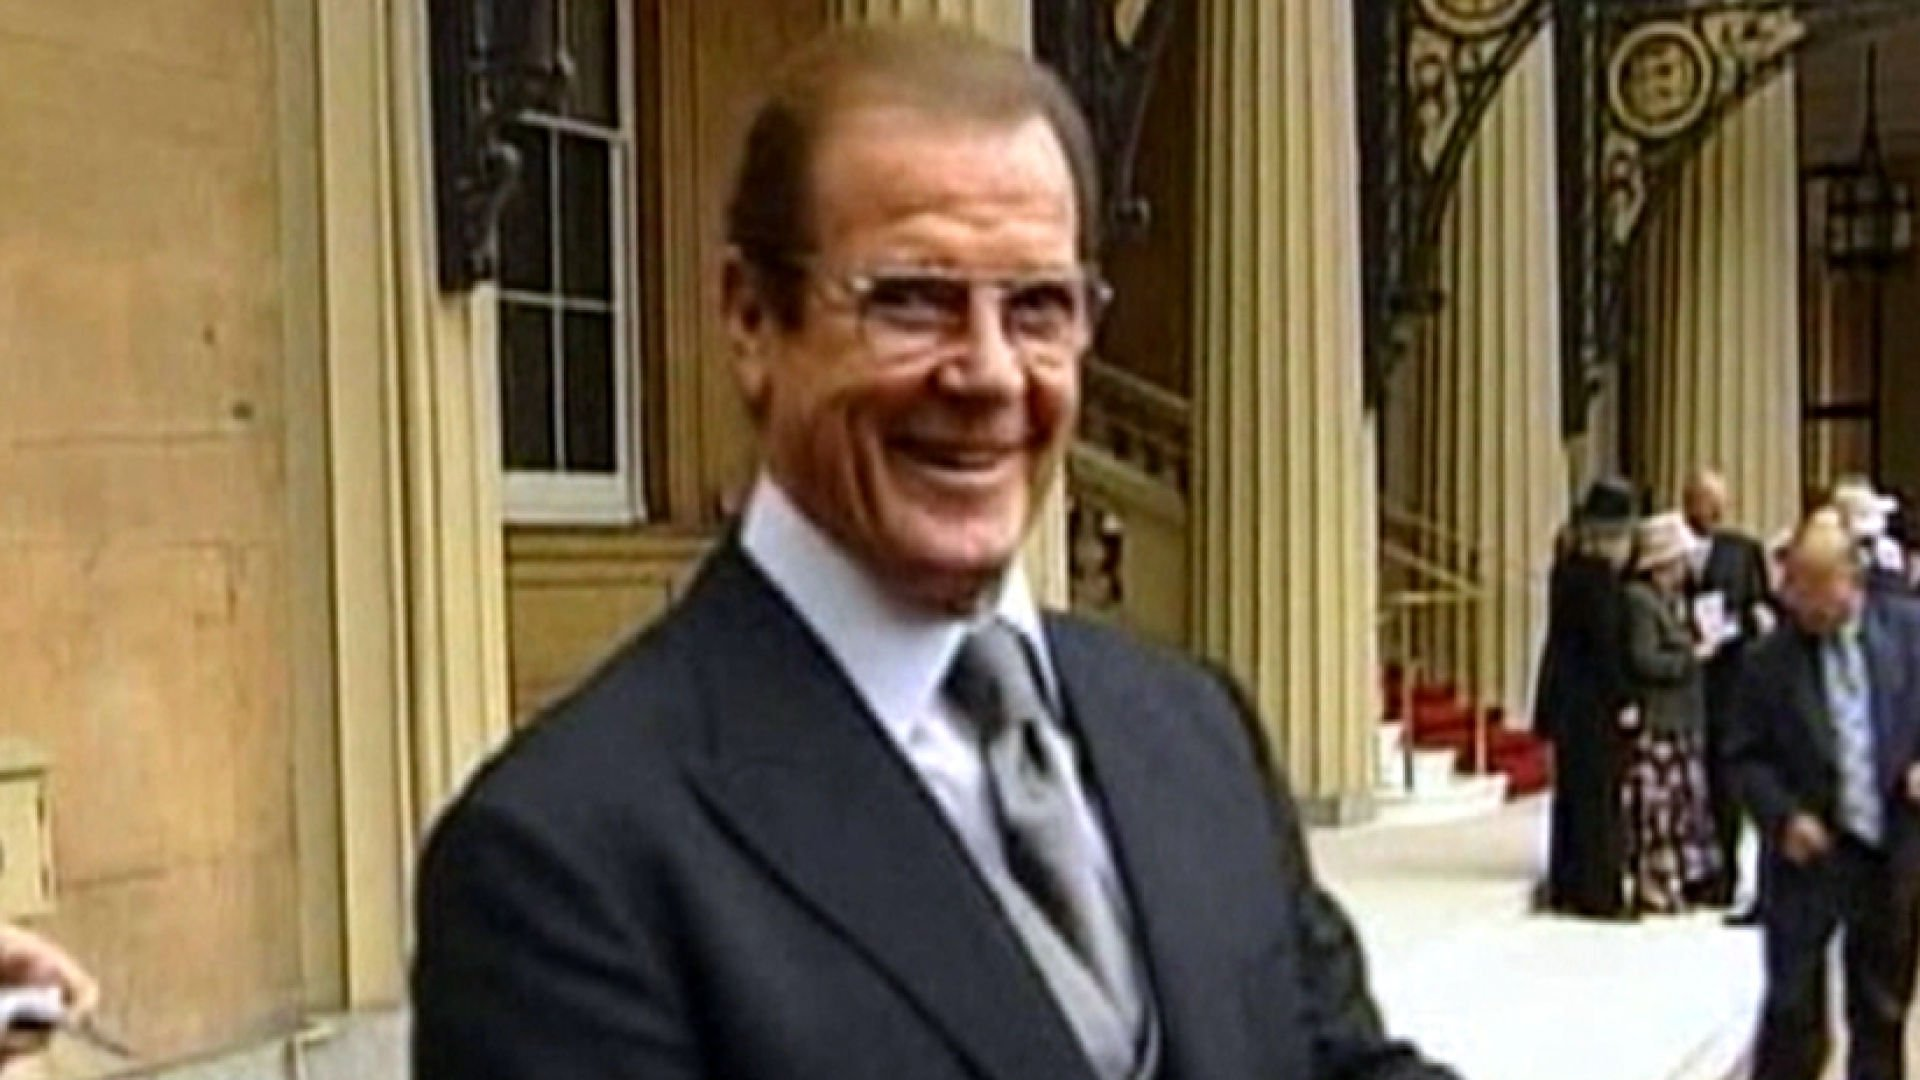 Sir Roger Moore, the movie star who played James Bond, has died after a brief bout with cancer.